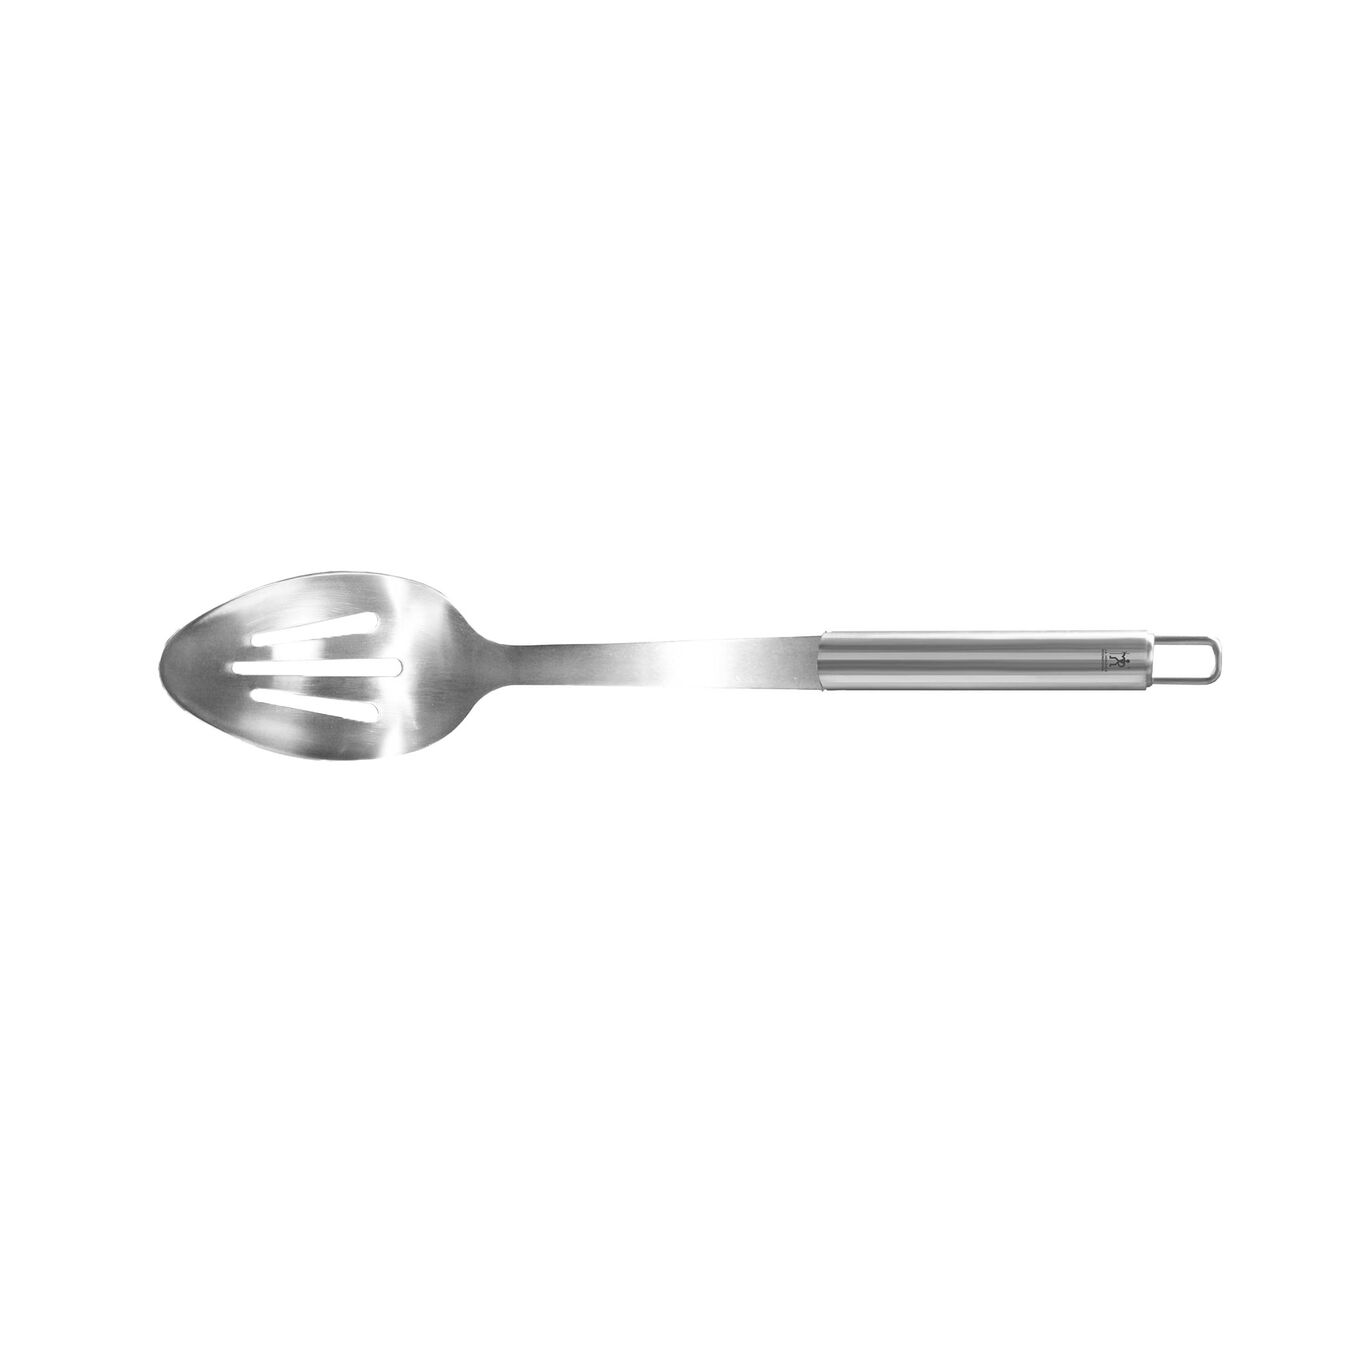 Serving spoon, 18/10 Stainless Steel,,large 1